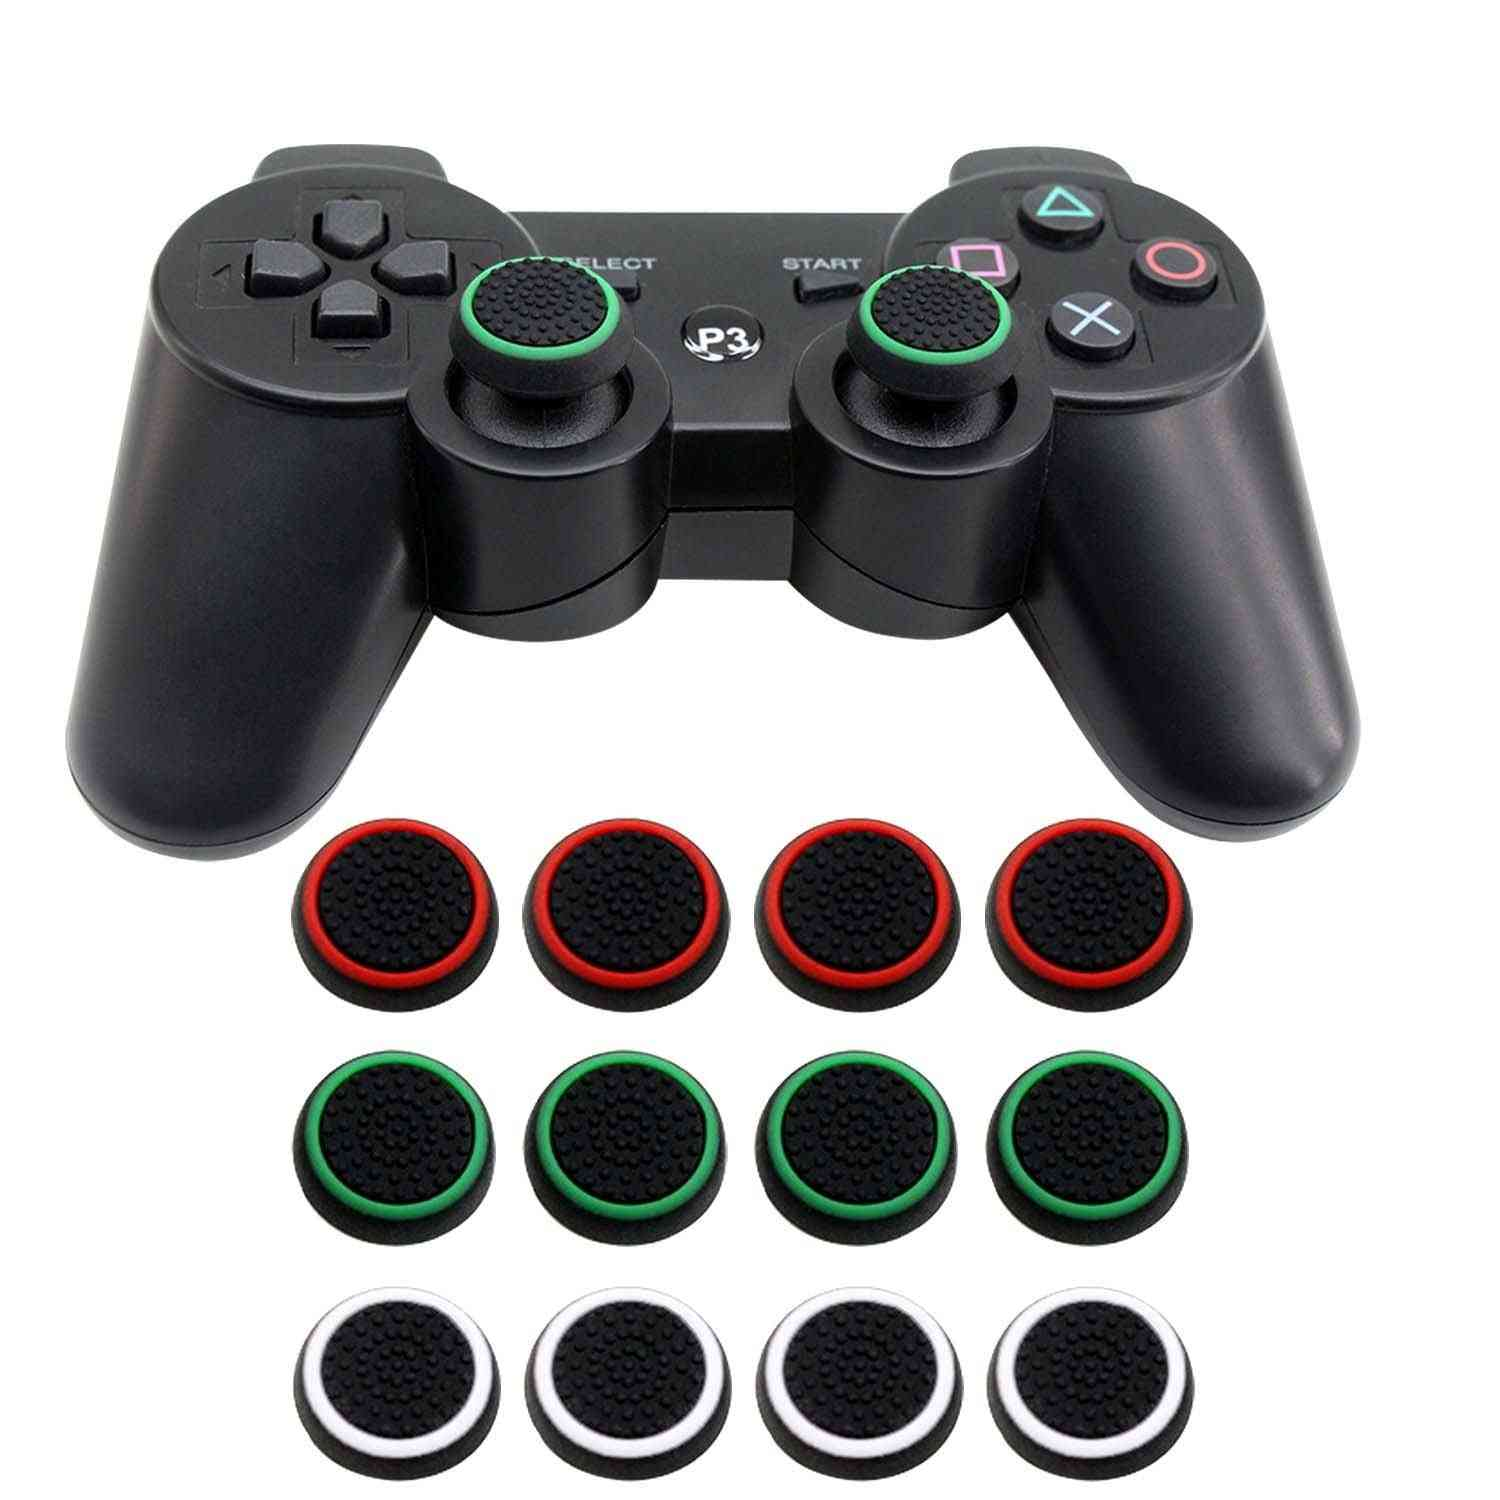 Soft Silicone, Anti-slip Thumb Grip Stick Cover - Case Skin For Sony Play Station